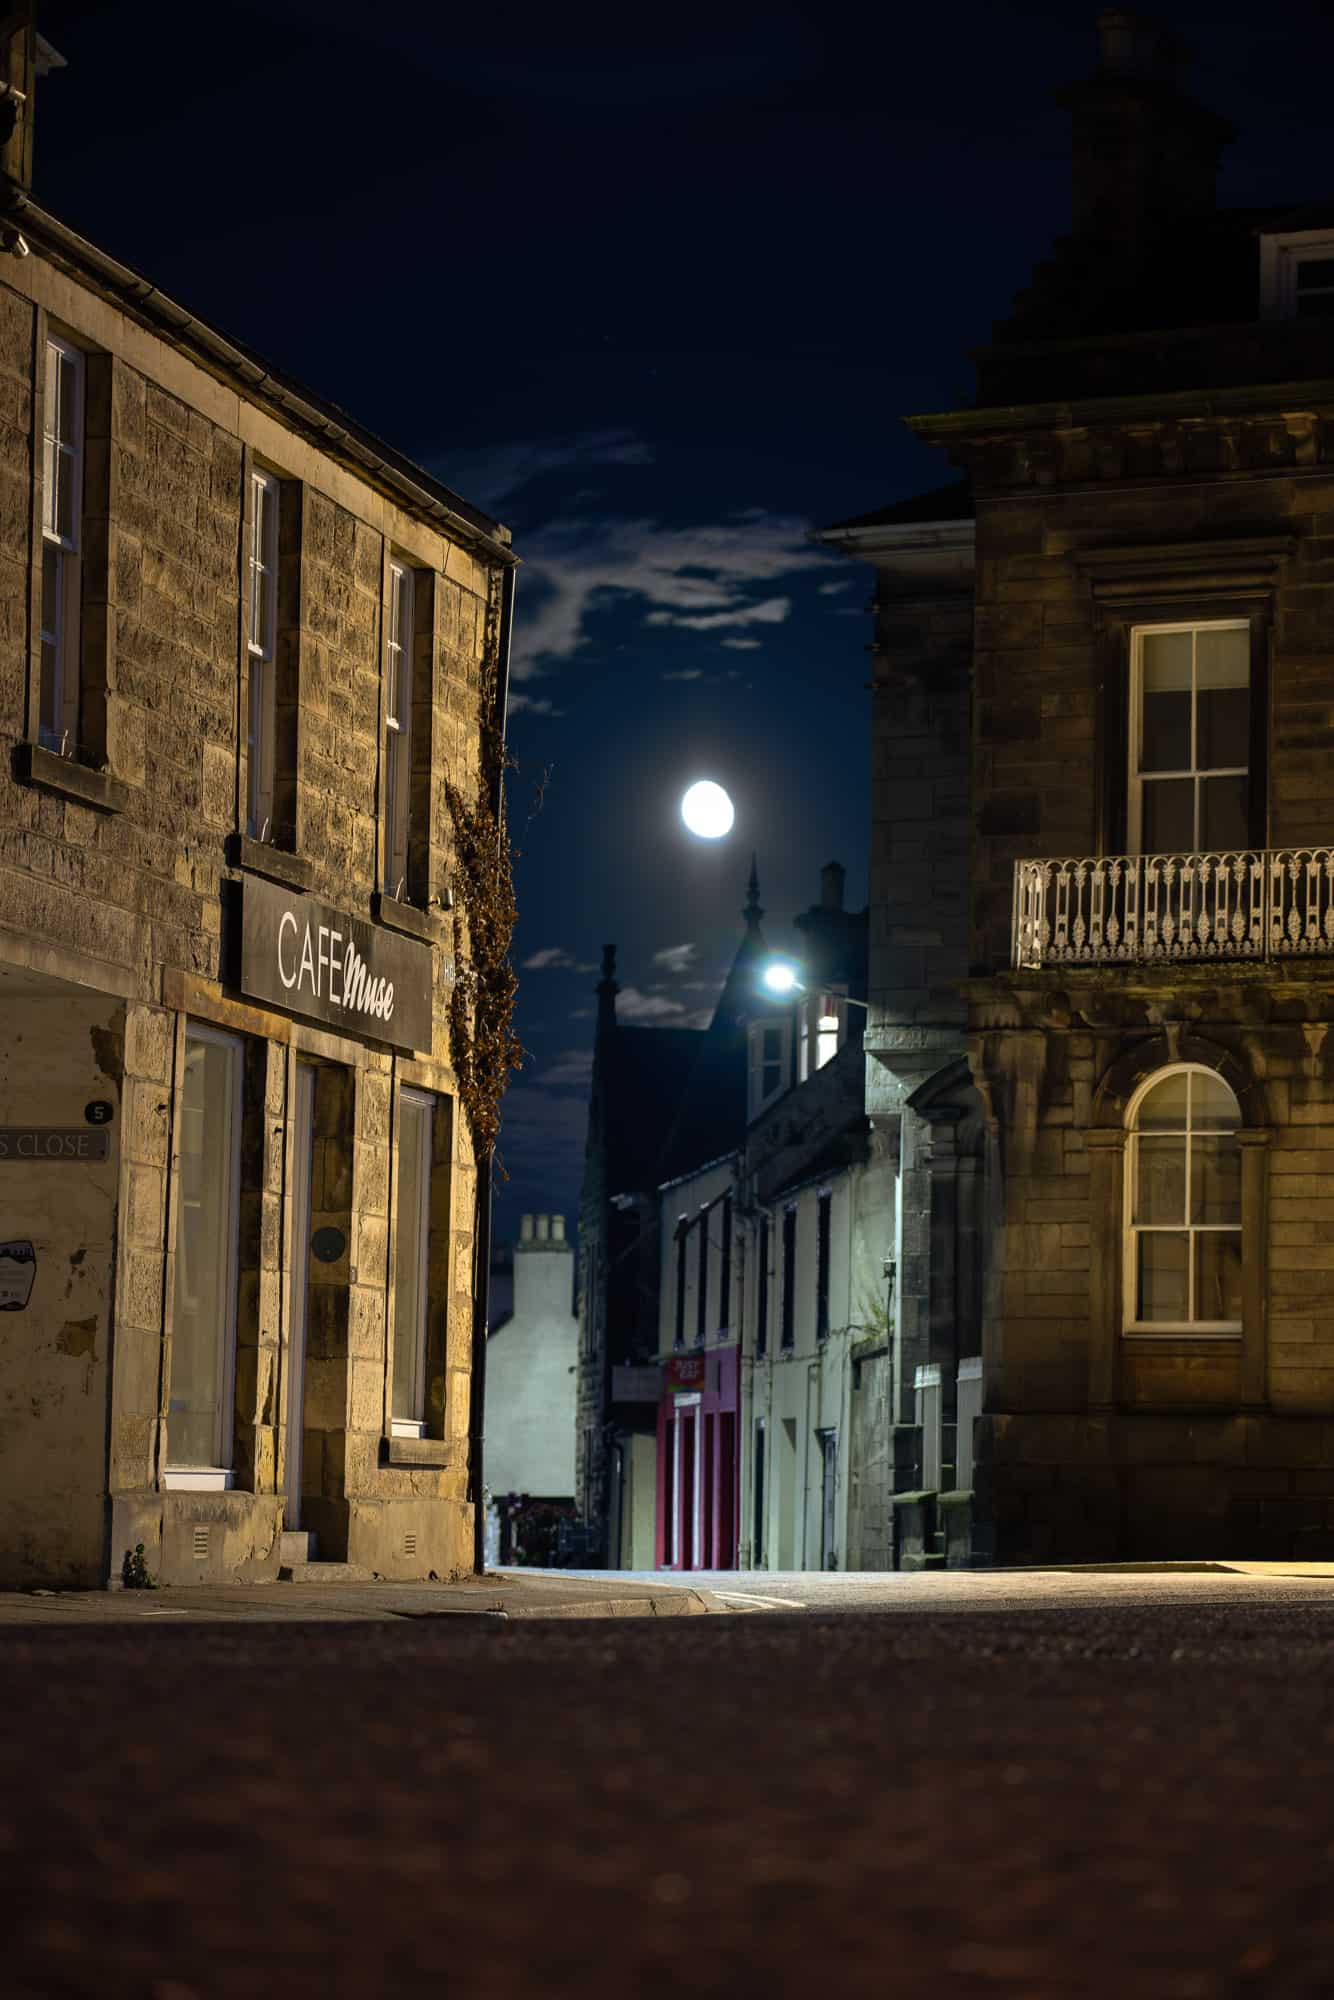 10 days in Scotland means 10 nights as well. A nearly-full moon lights up the city of Elgin at night.